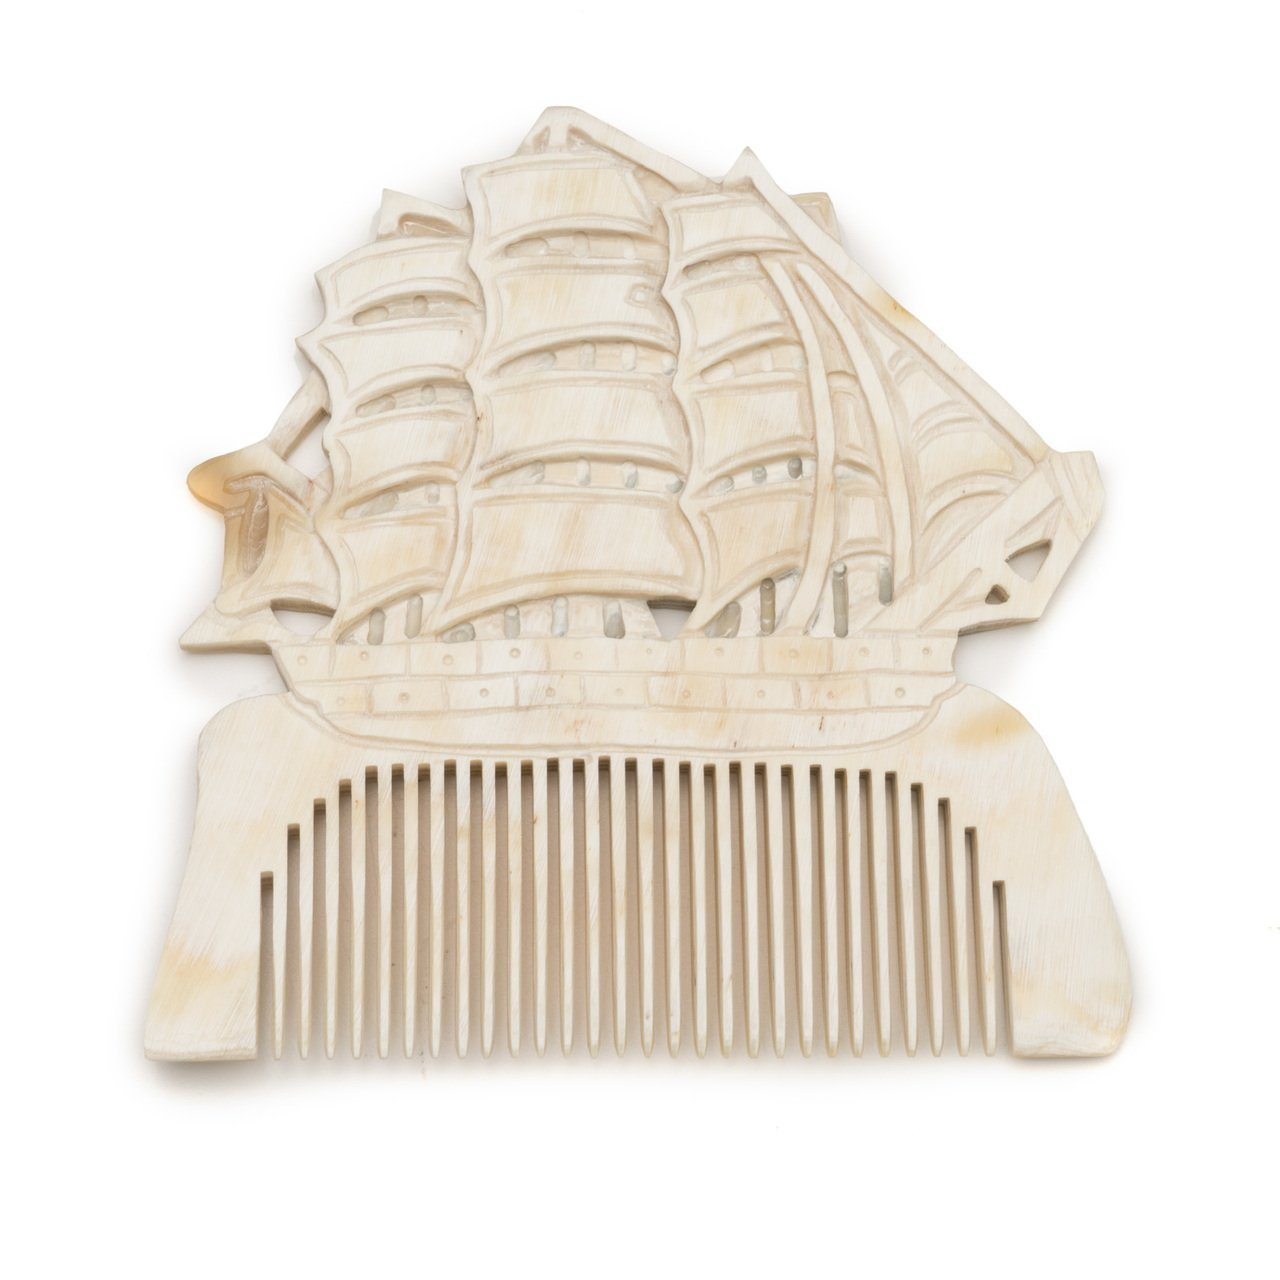 Siren Song Horn Ship Comb